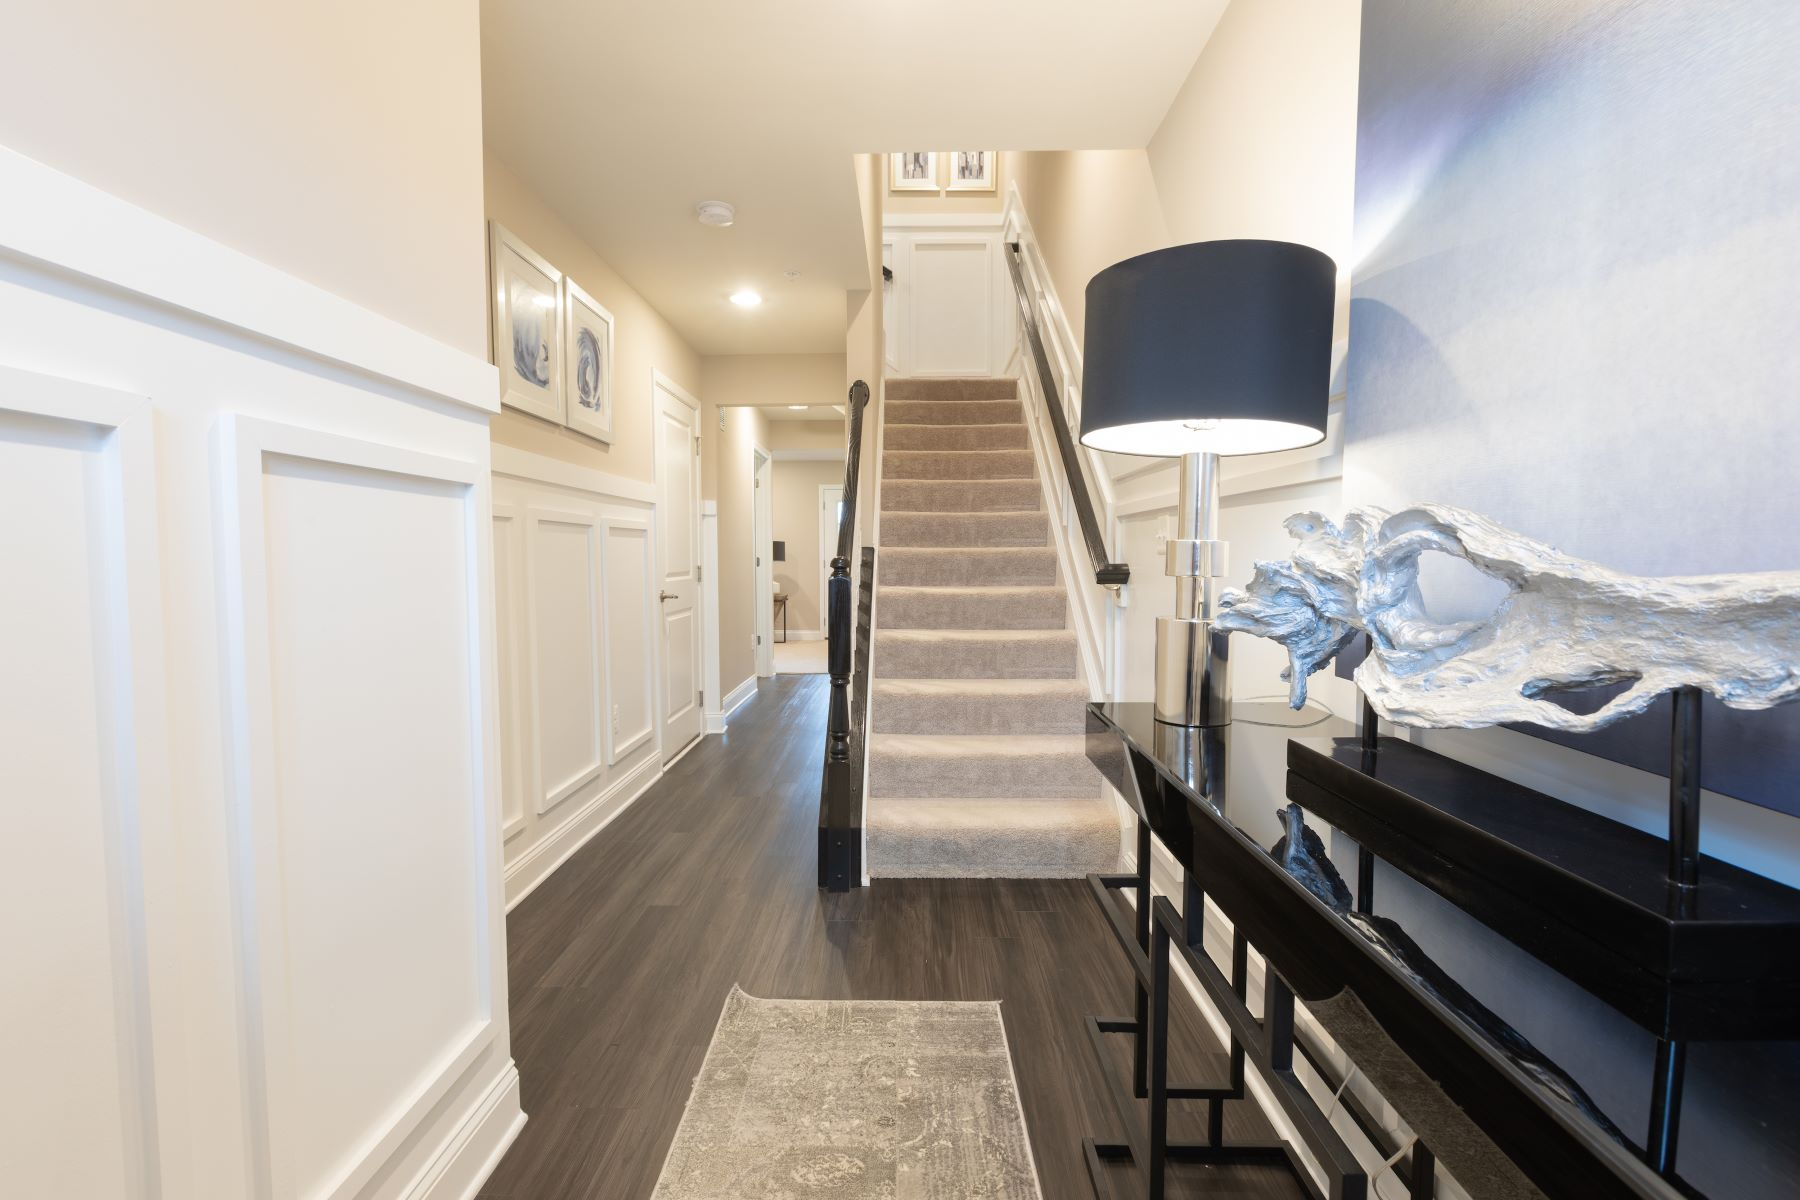 Single Family Homes for Sale at Arcadia Townhome 8120 Trotters Chase Ellicott City, Maryland 21043 United States